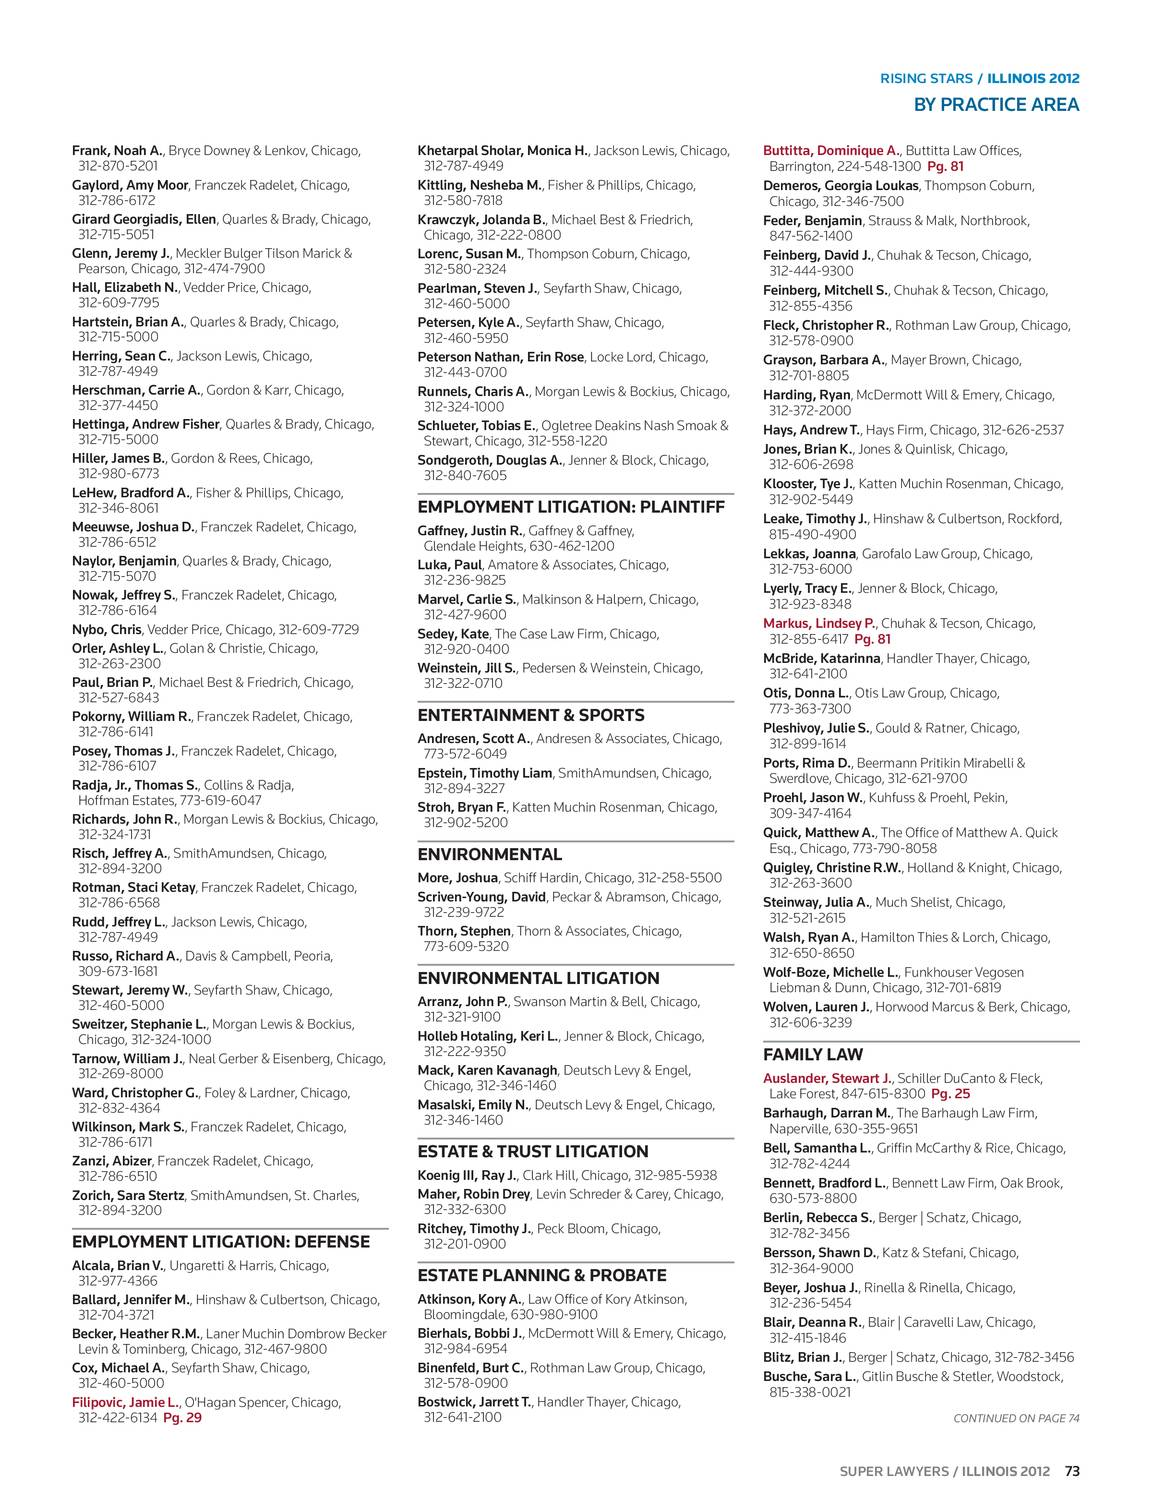 super lawyers - illinois 2012 - page 72